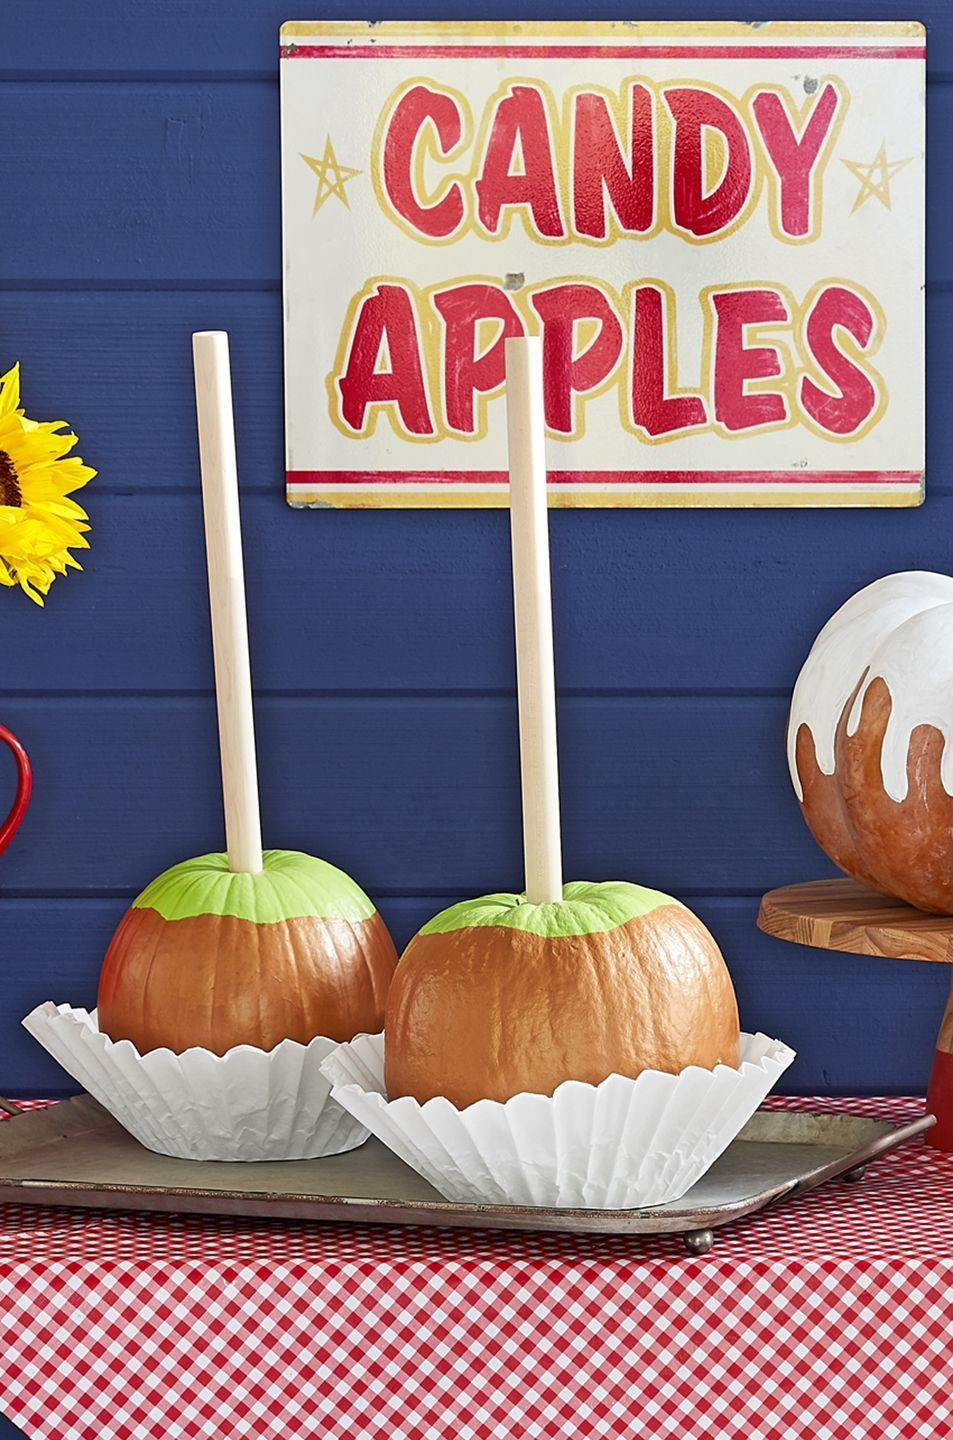 """<p>Although these painted pumpkins look just like real <a href=""""https://www.countryliving.com/food-drinks/g975/apple-dessert-recipes/"""" rel=""""nofollow noopener"""" target=""""_blank"""" data-ylk=""""slk:candied apples"""" class=""""link rapid-noclick-resp"""">candied apples</a>, they unfortunately don't have the delicious taste. To make this sweet craft, first remove the stem of a medium pumpkin. Use craft paint to paint the top part green, so it resembles a Granny Smith apple. Once dry, use craft paint to paint the bottom 2/3 a golden caramel color. (Are you drooling yet?) Then, hot-glue a 3/4- by 12-inch dowel where the stem was. Display in a large, industrial-size coffee filter. </p>"""